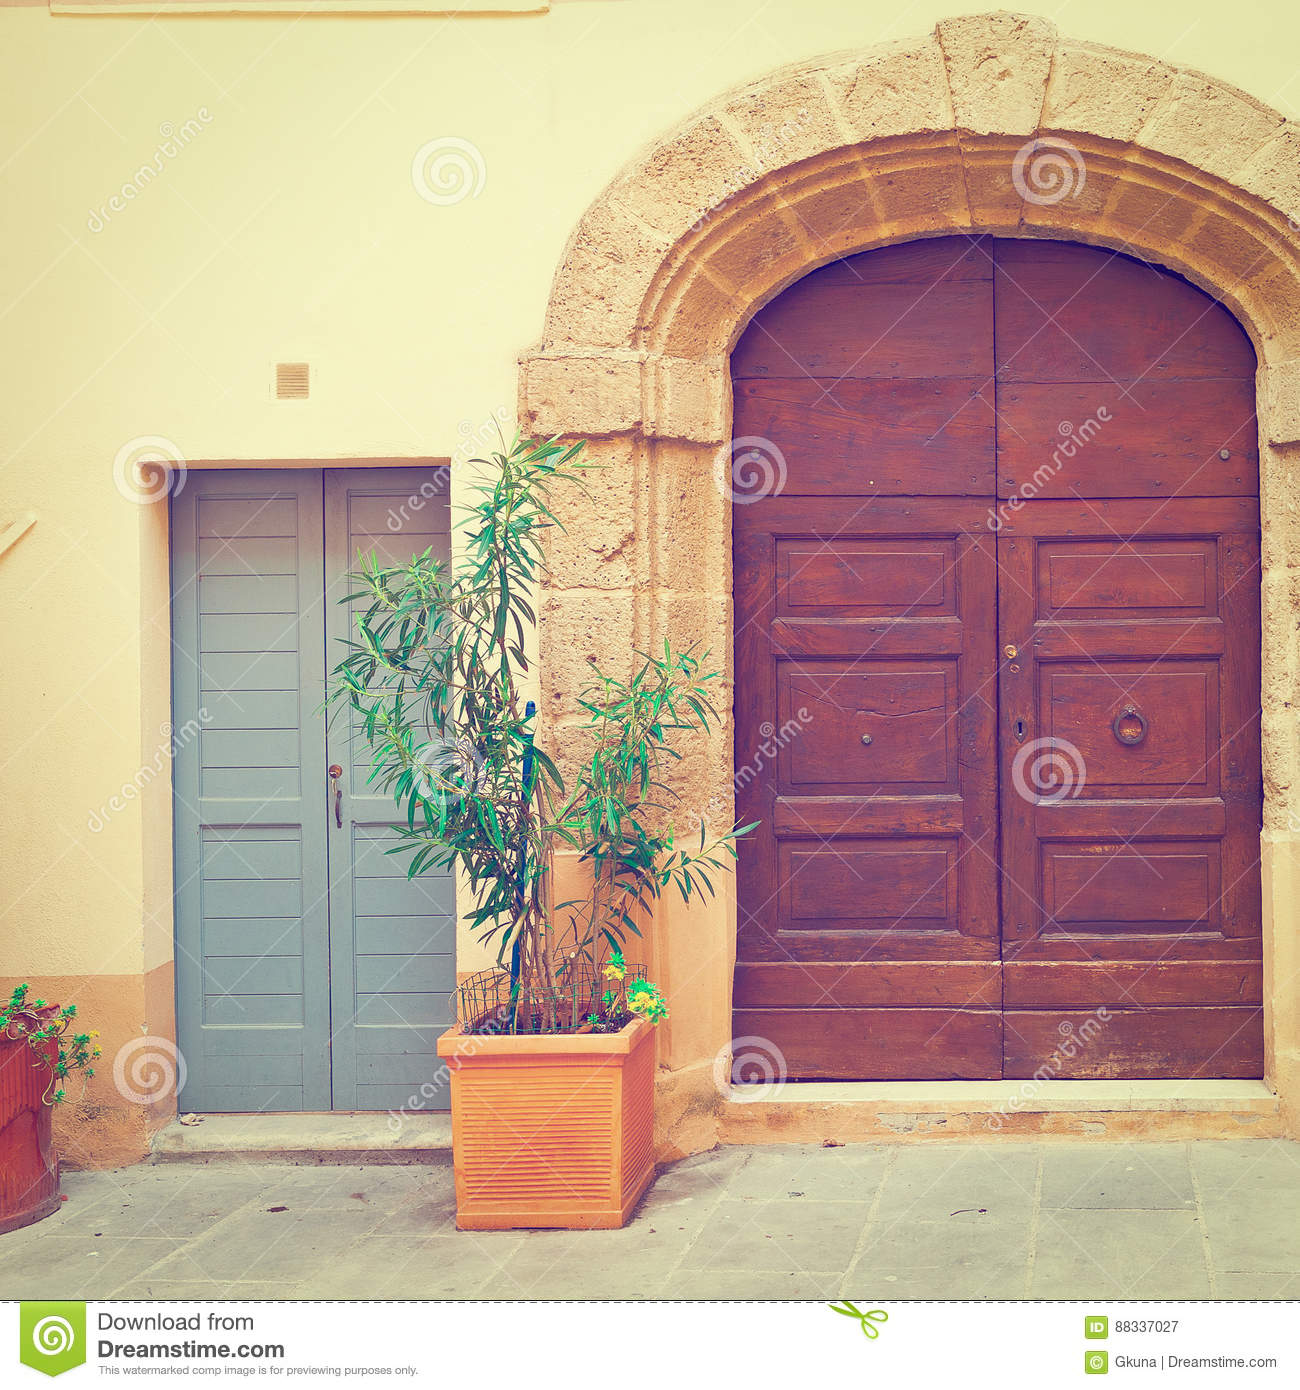 Wooden Ancient Italian Door In Historic Center, Instagram Effect